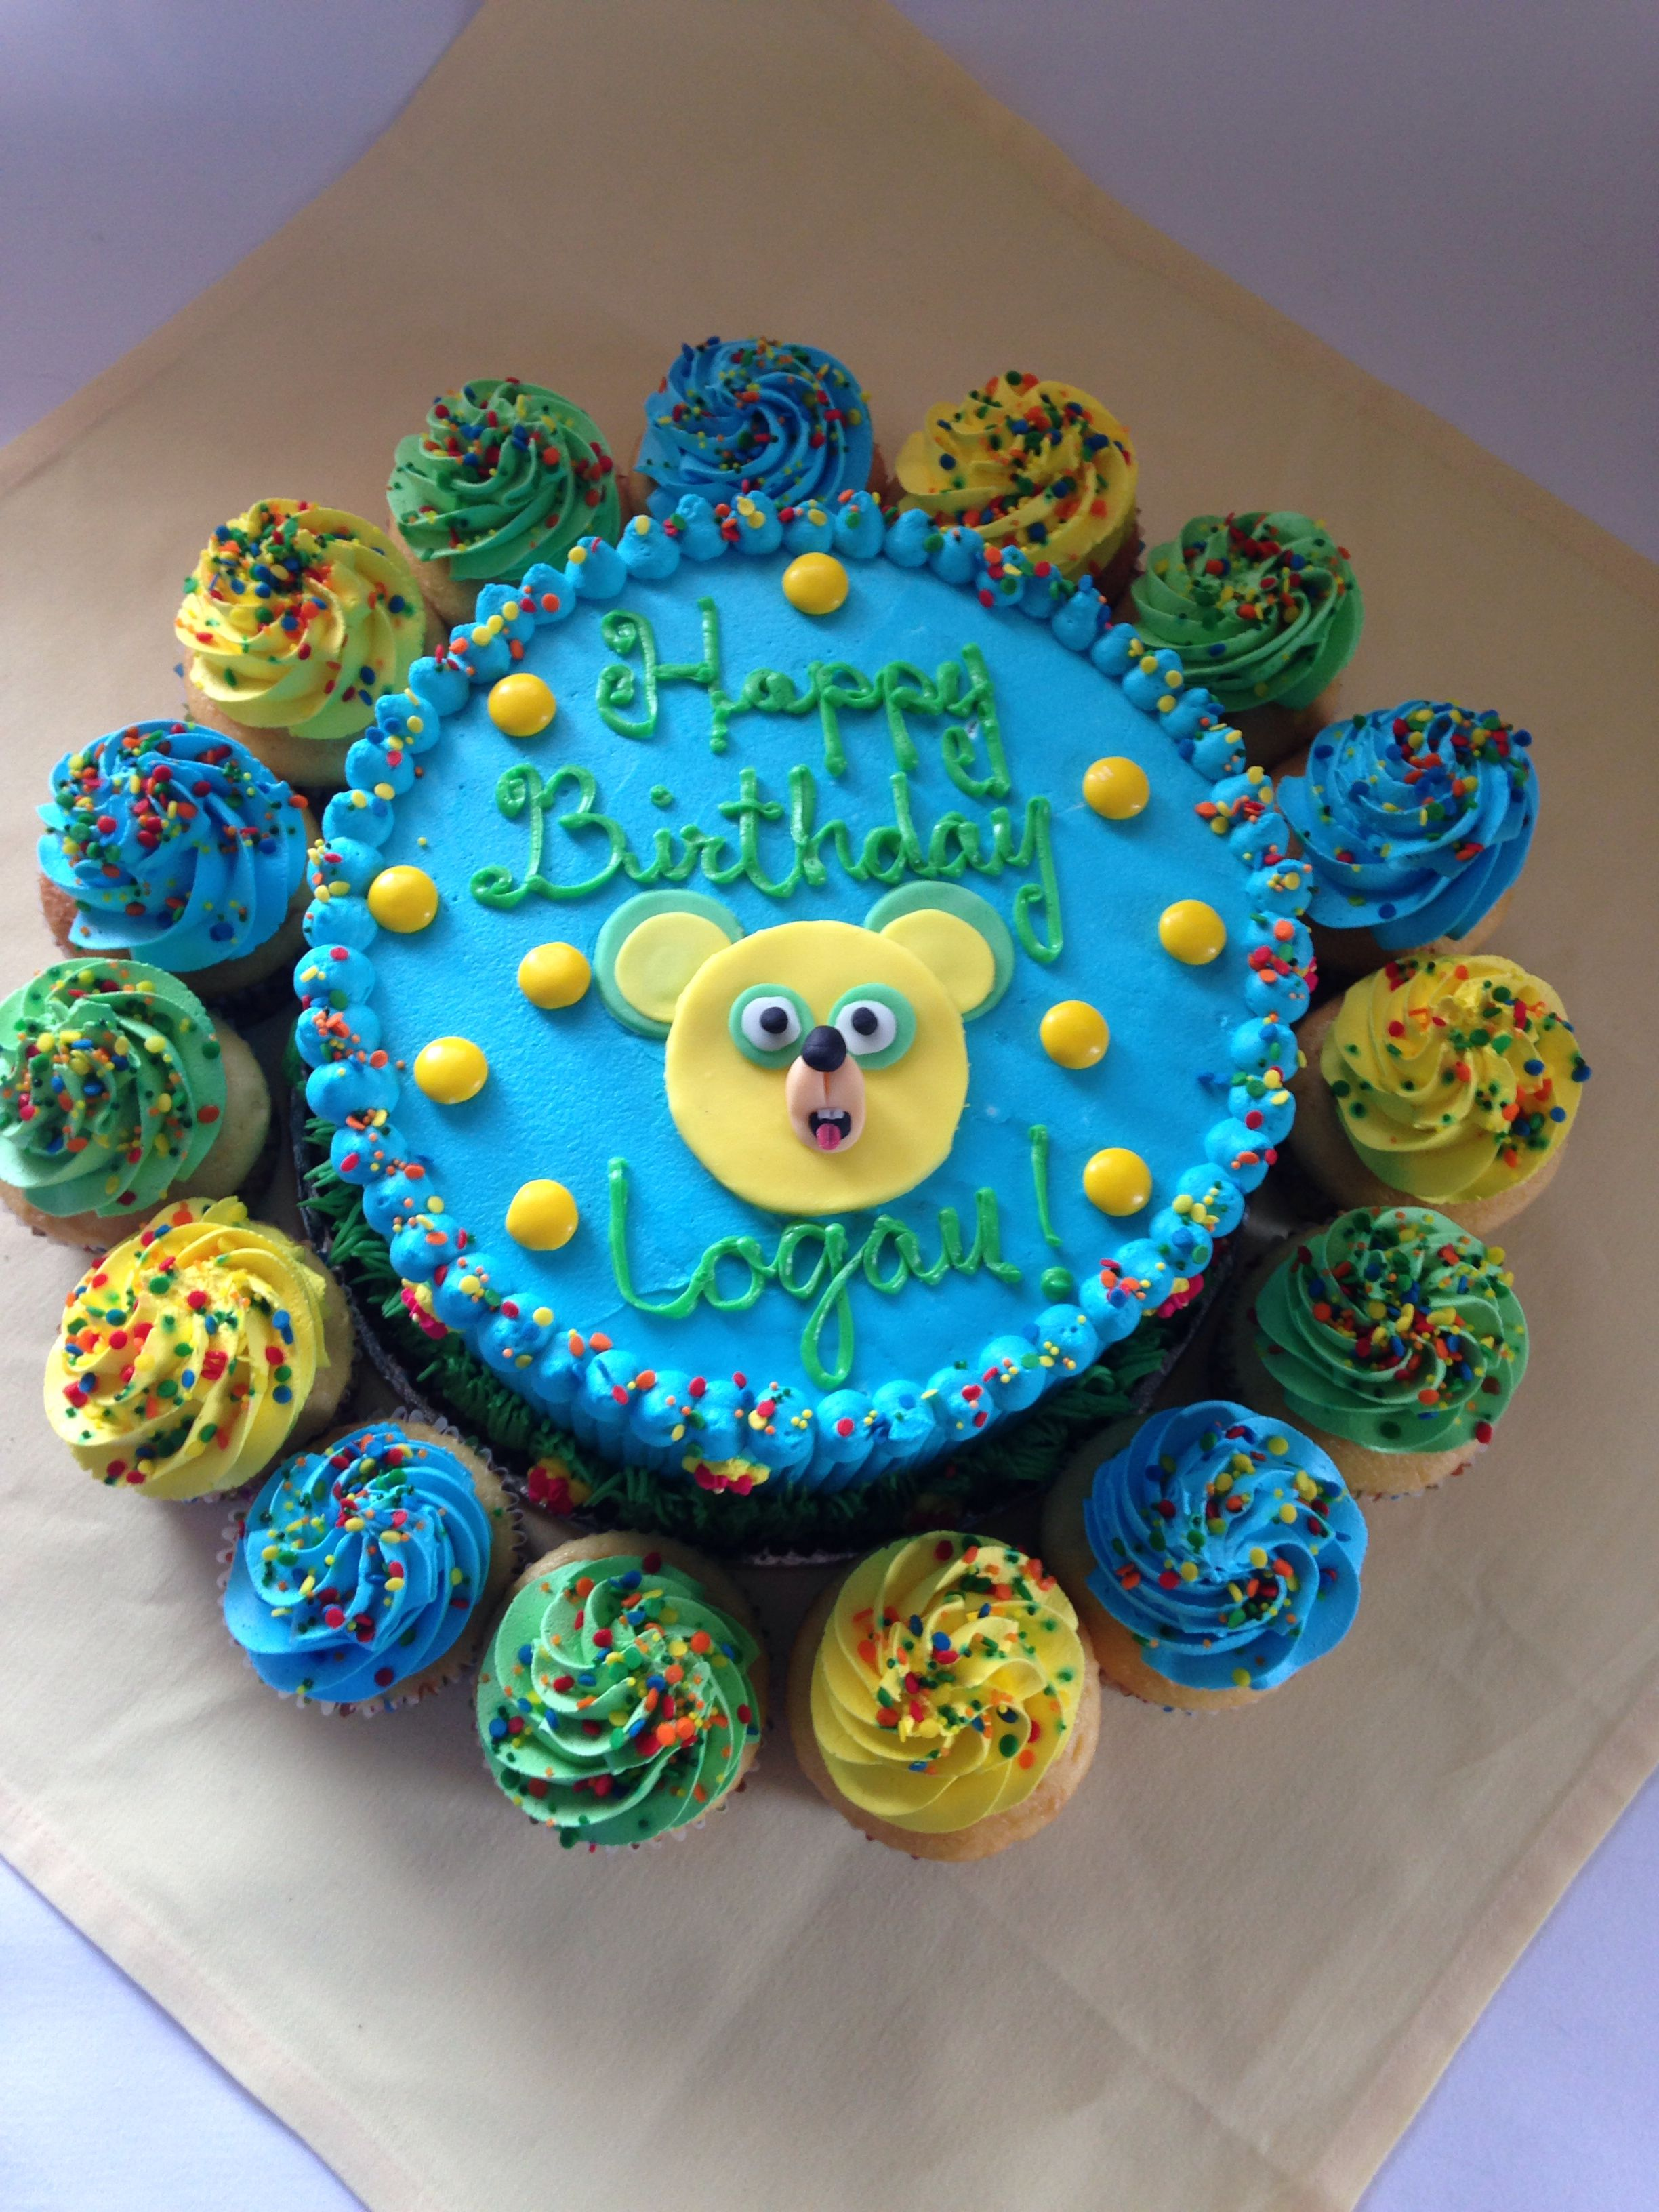 Special Agent Oso Cake With Cupcakes 1st Birthday